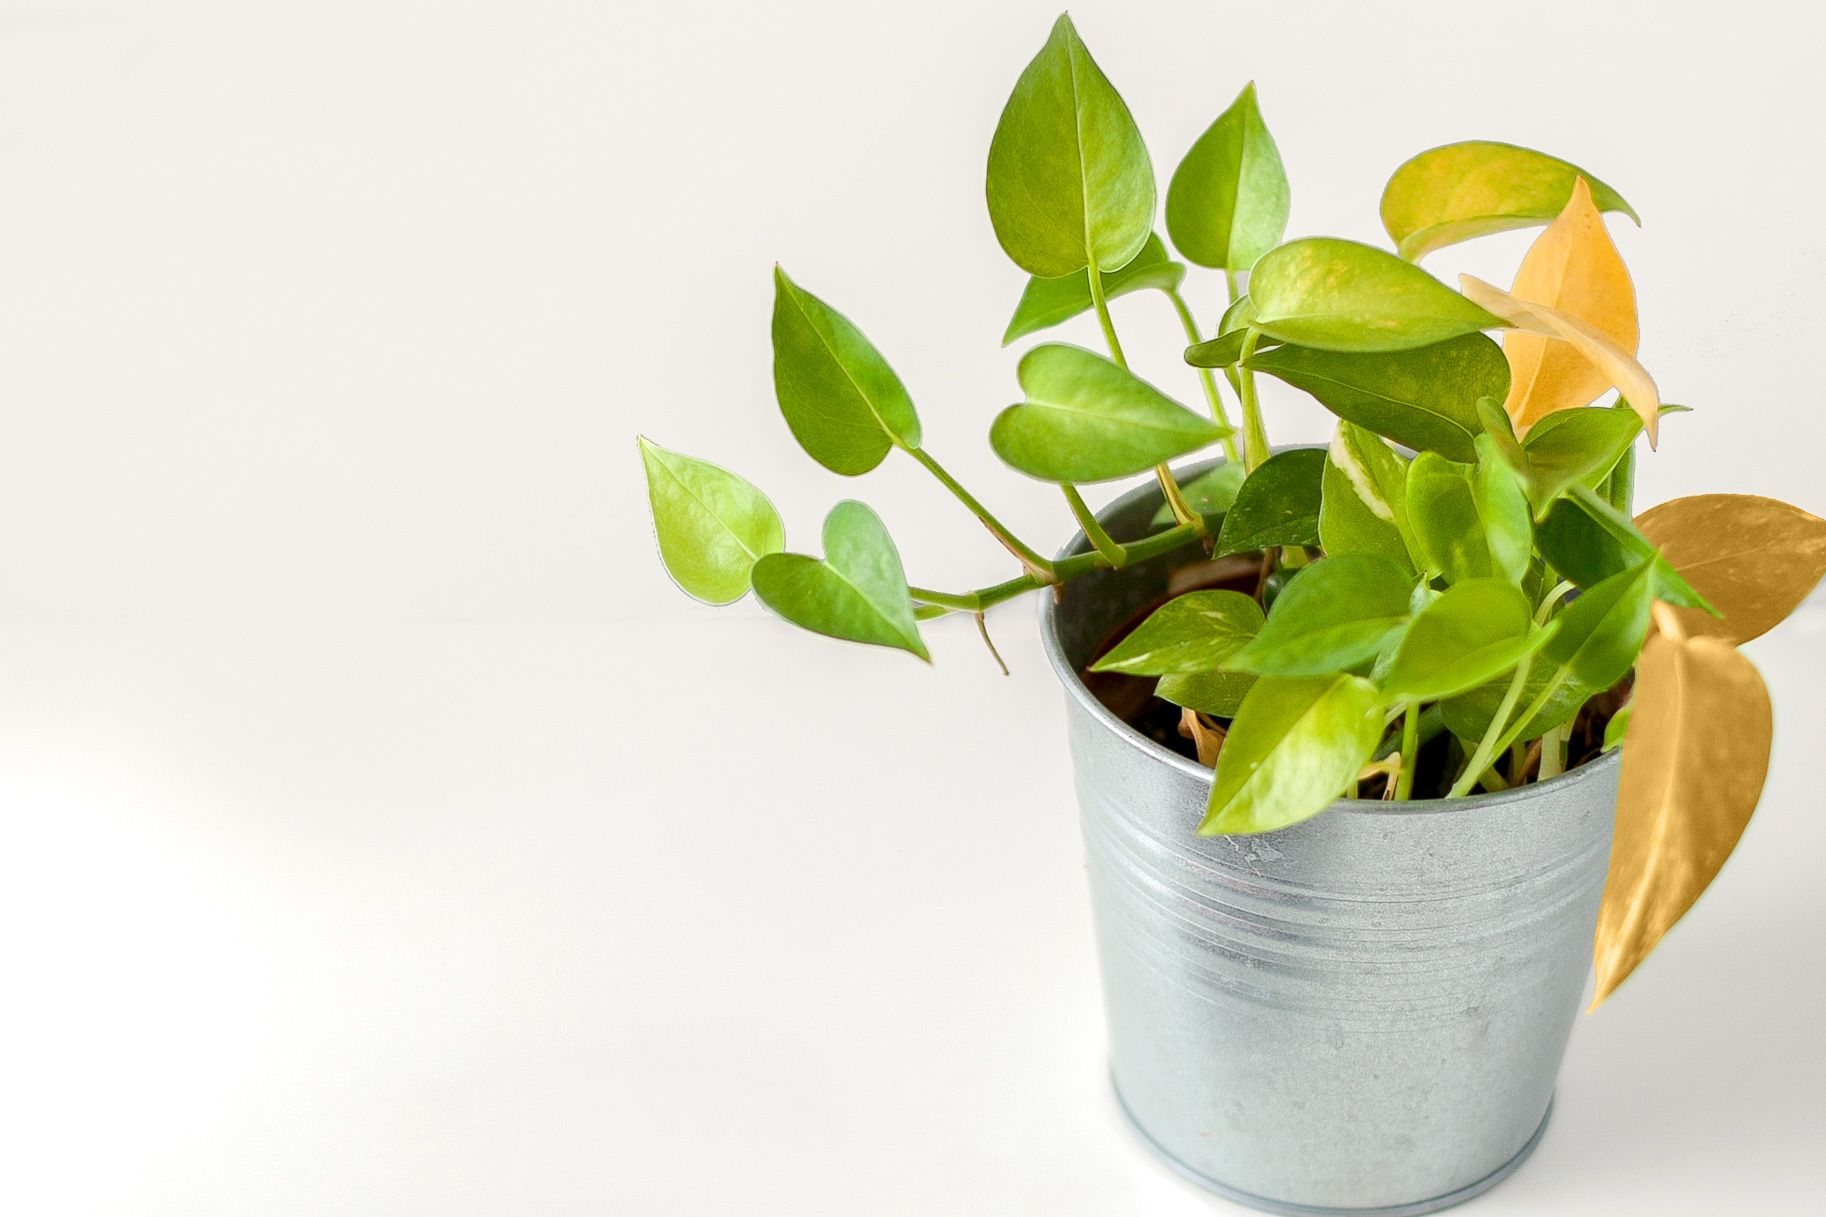 What You Need To Know When Your Houseplant Turns Yellow Plant Care Houseplant Yellow Leaves On Plants House Plant Care